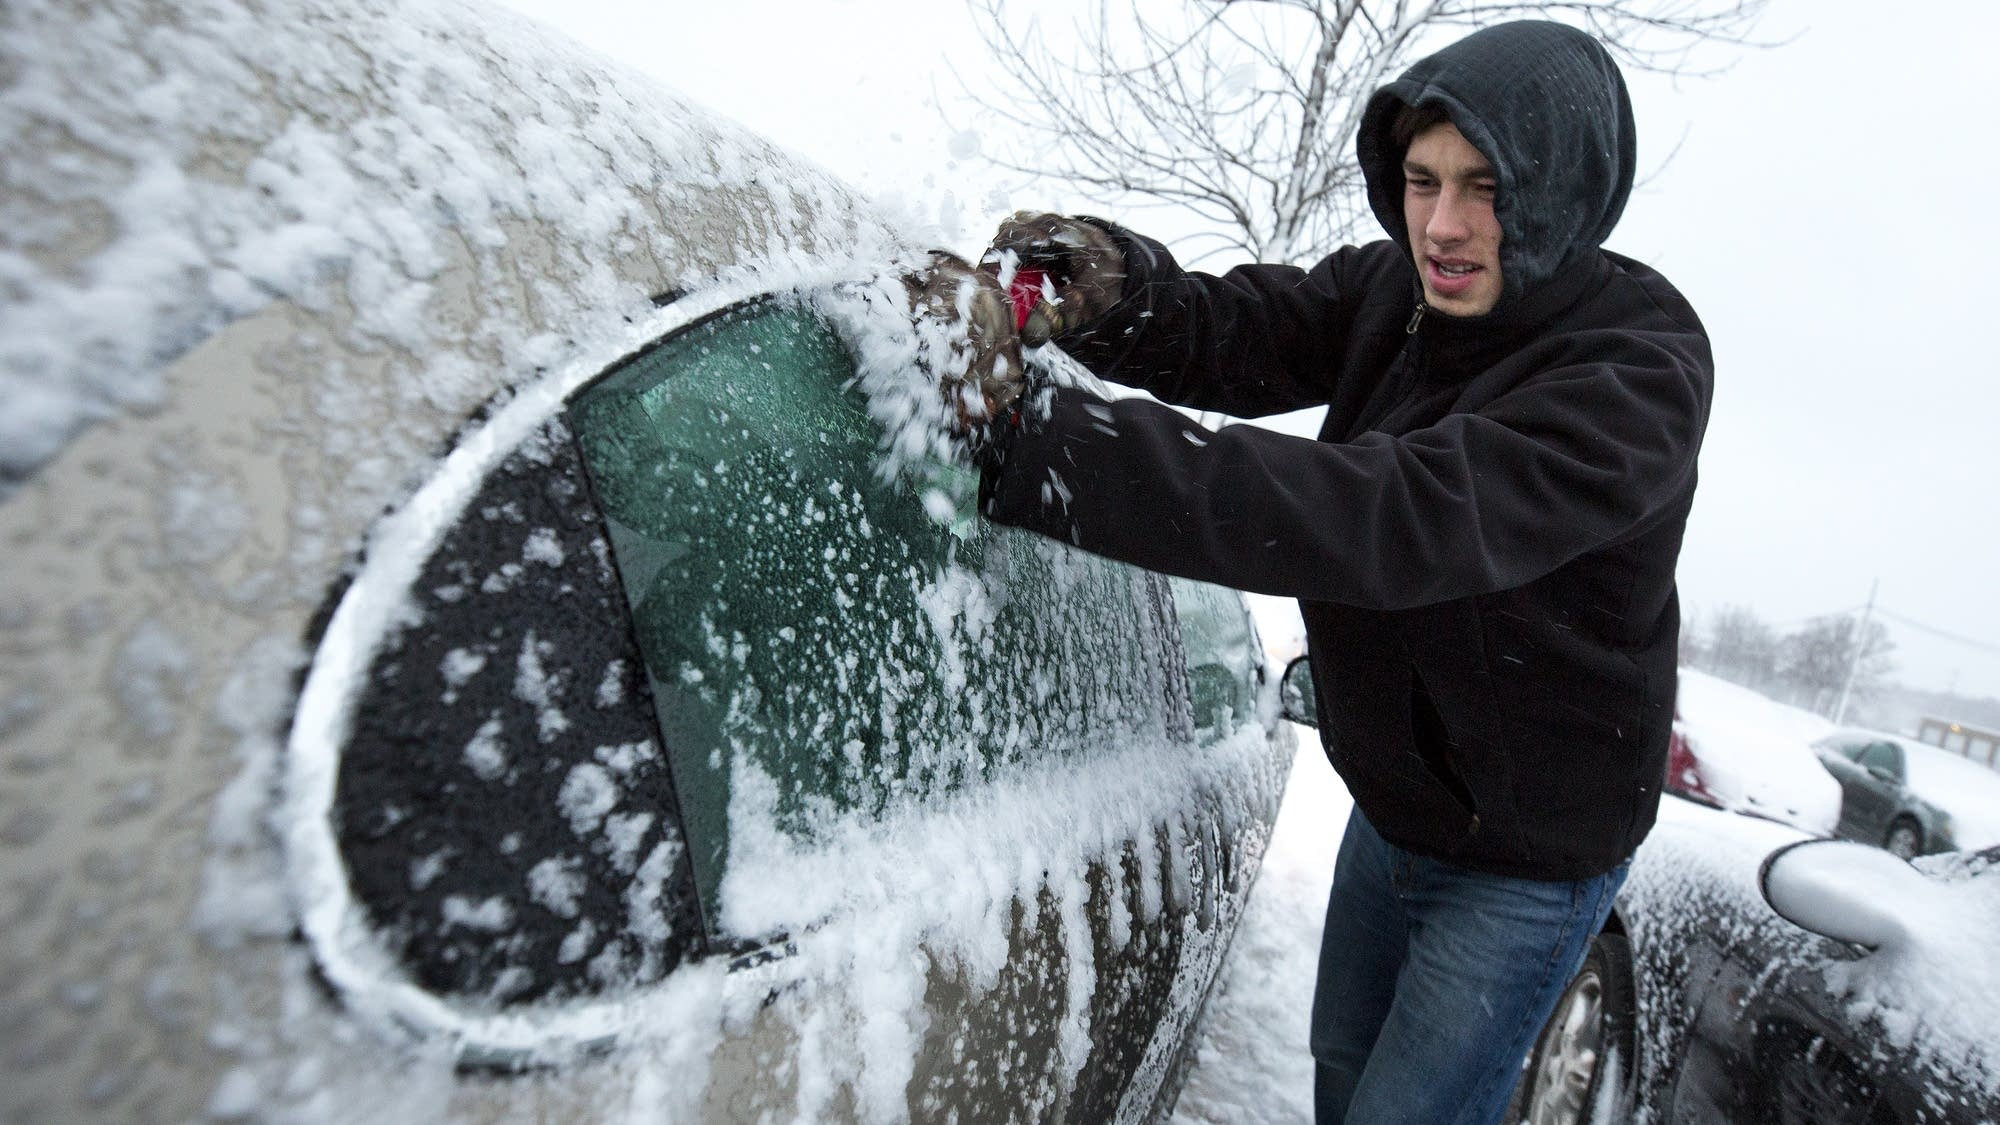 SCSU student Dalton Foley scrapes ice off his car.